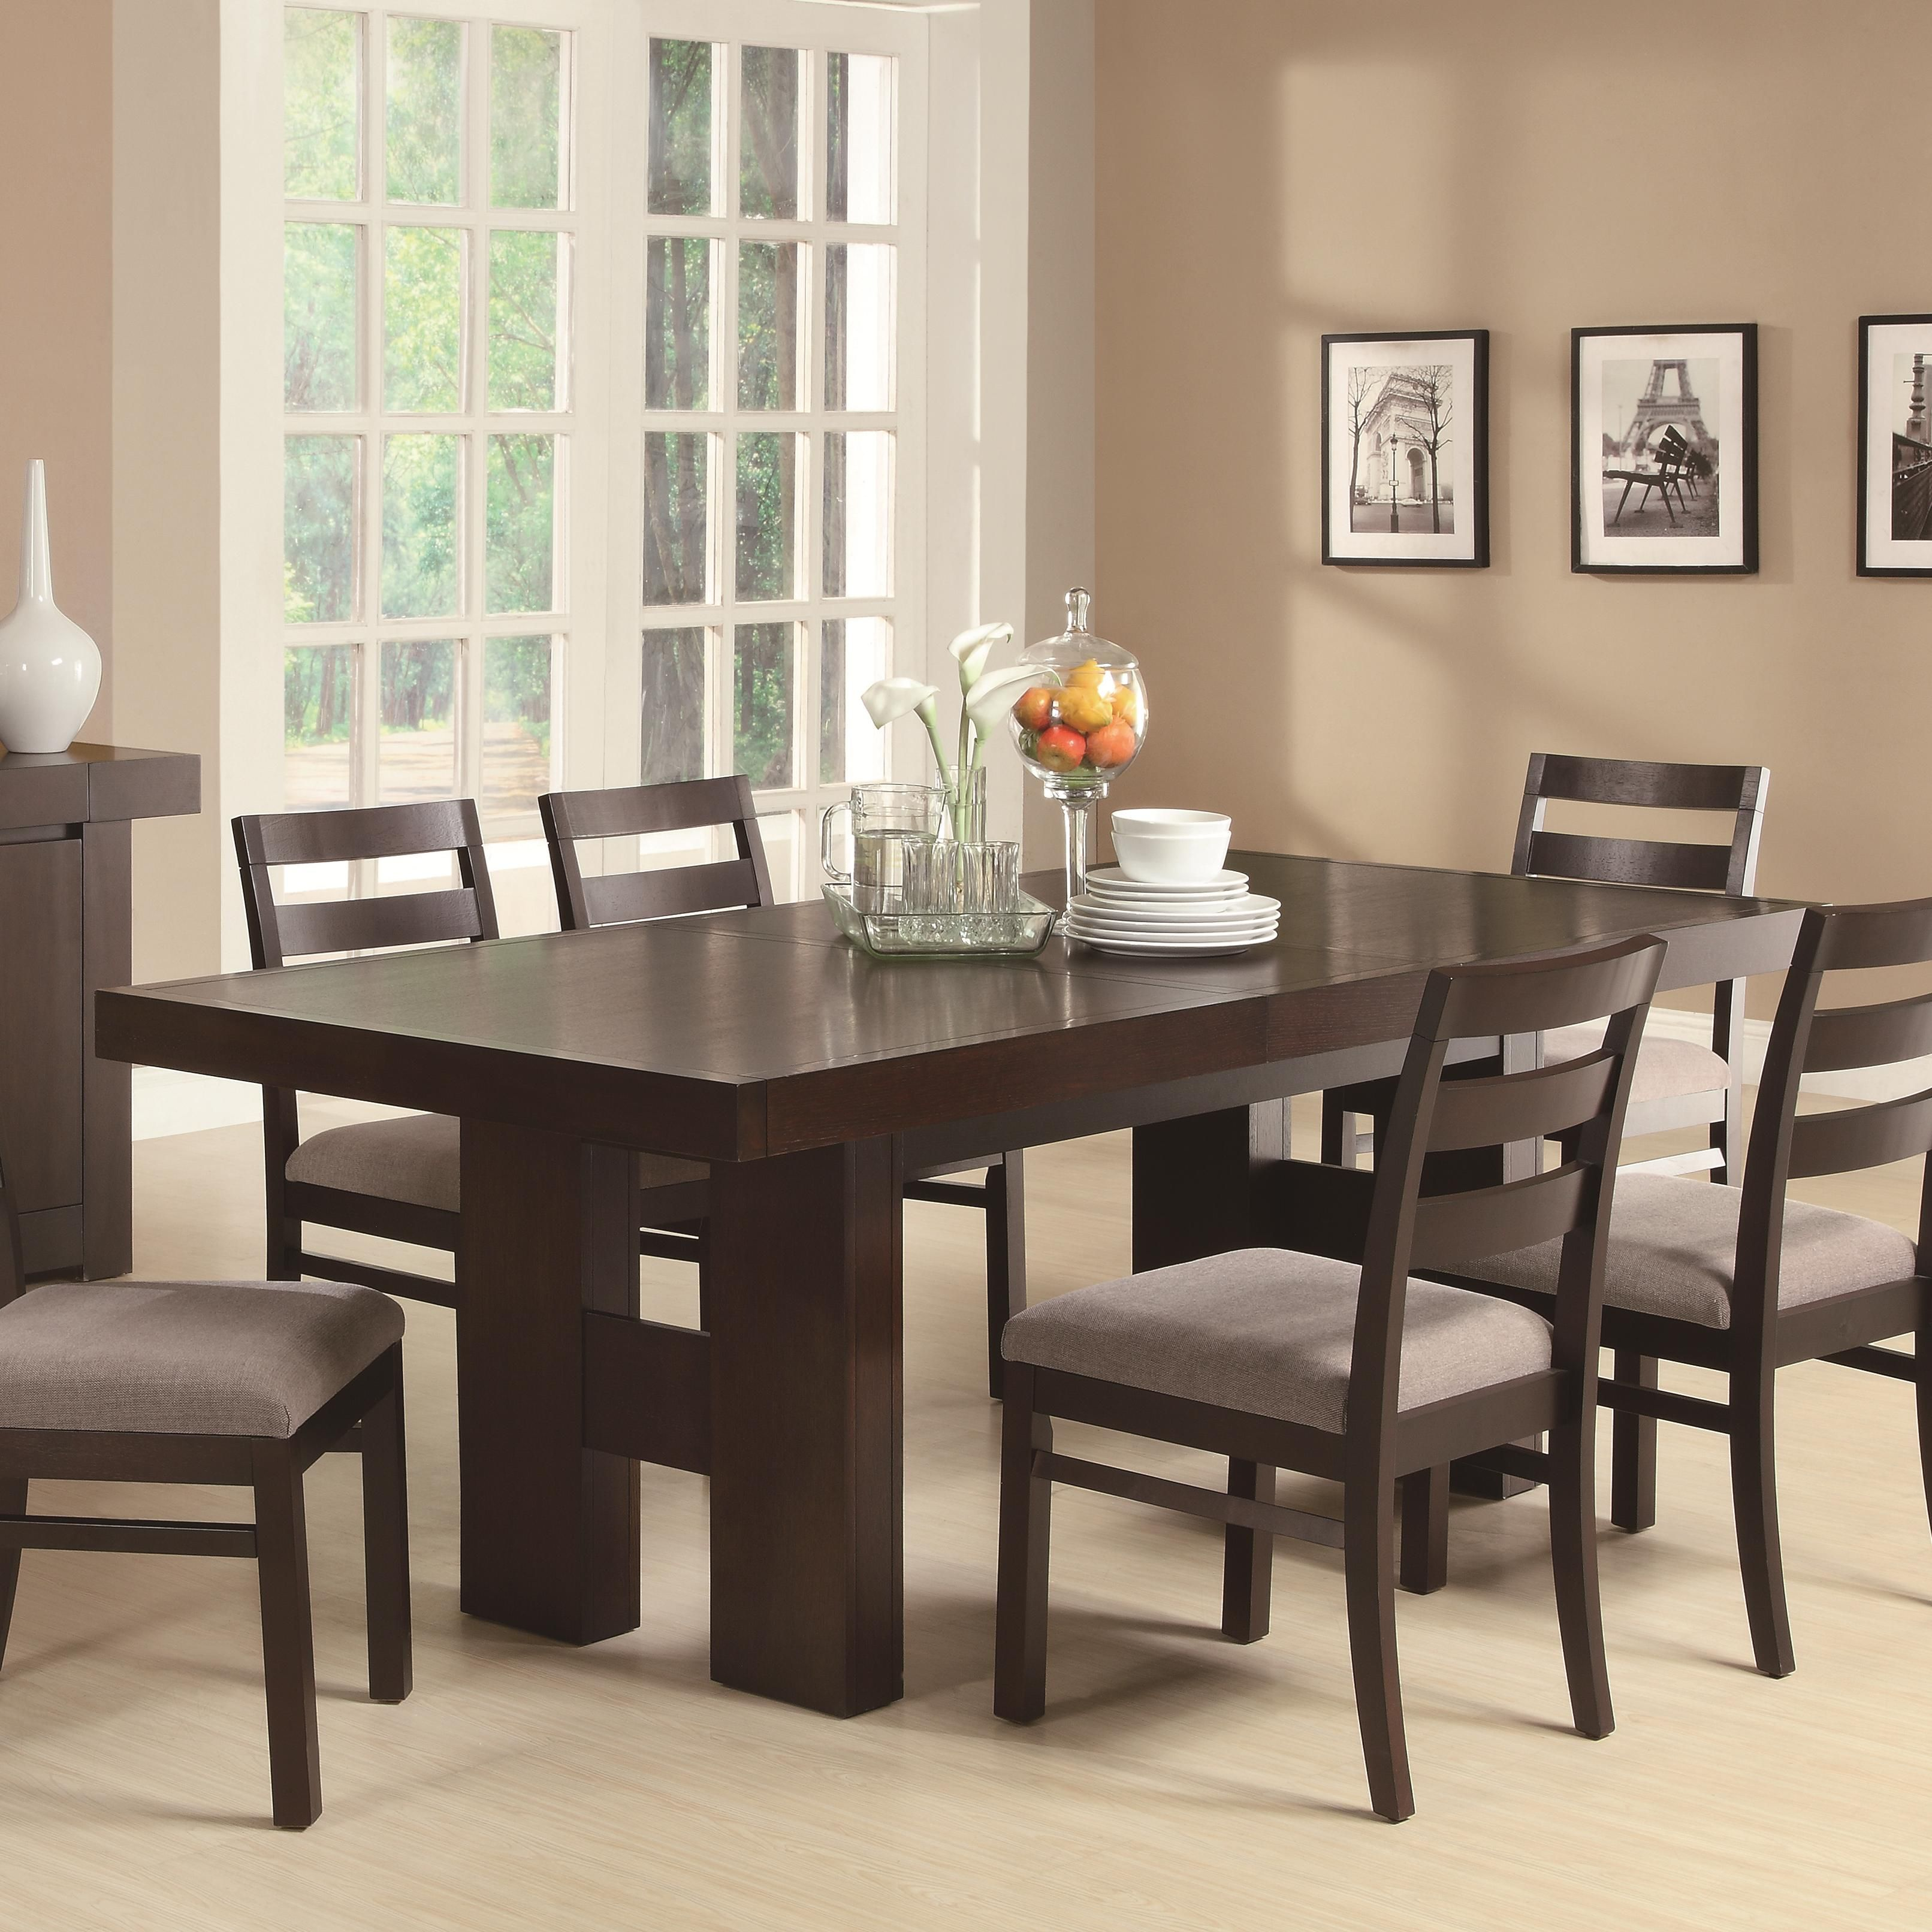 Dabny Dining Table With Pull Out Extension By Coaster Coaster